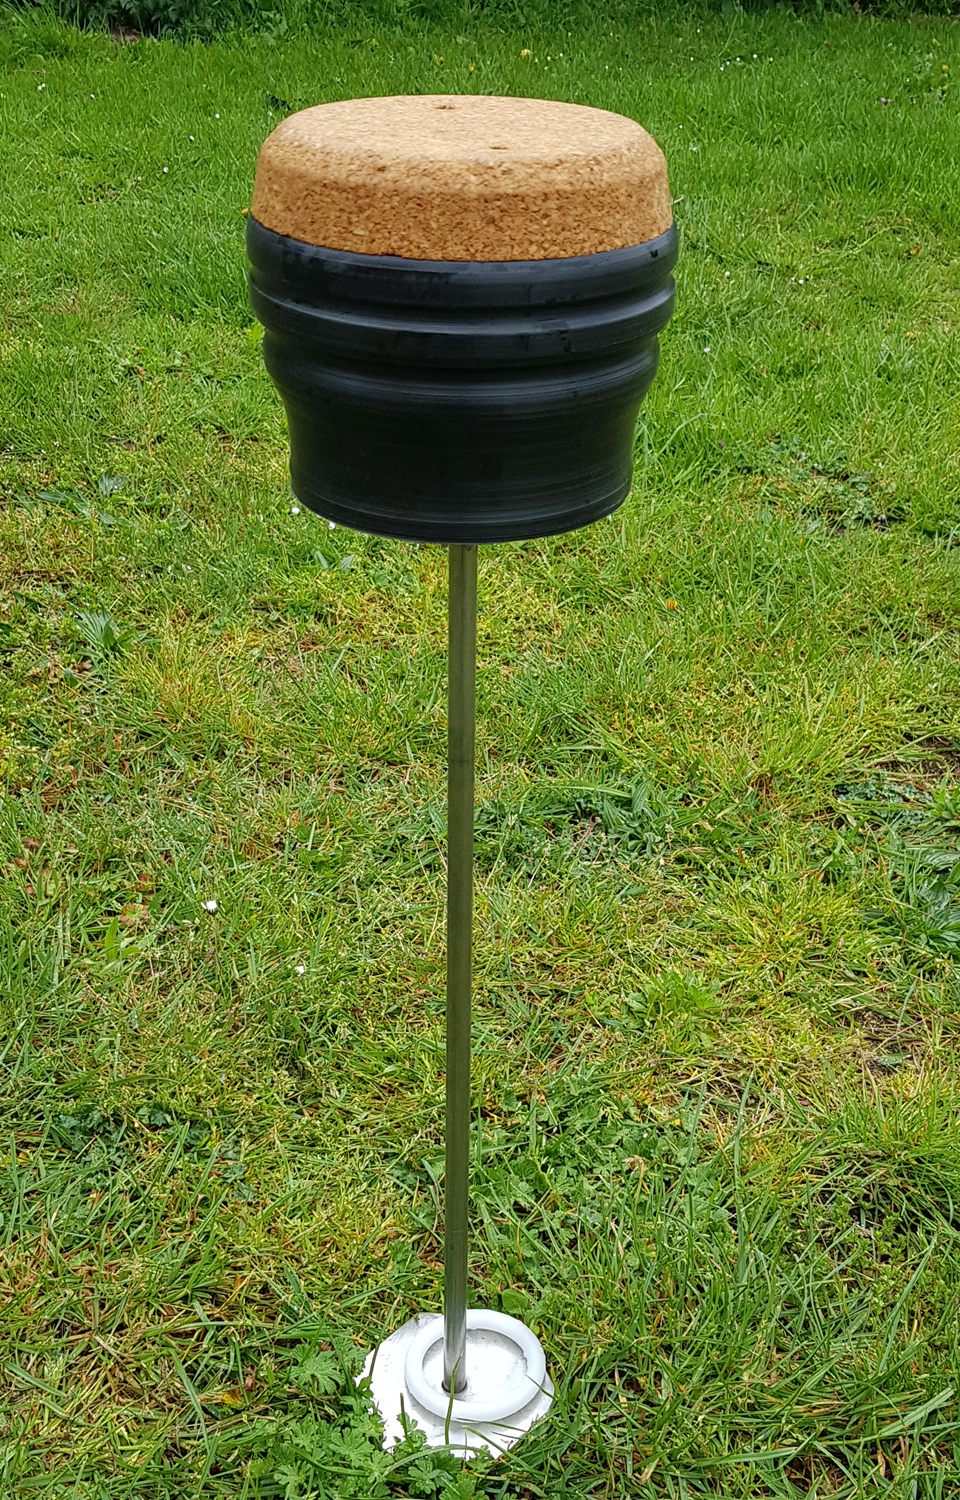 Tall Nylon Block - 25 inches to 48 inches tall